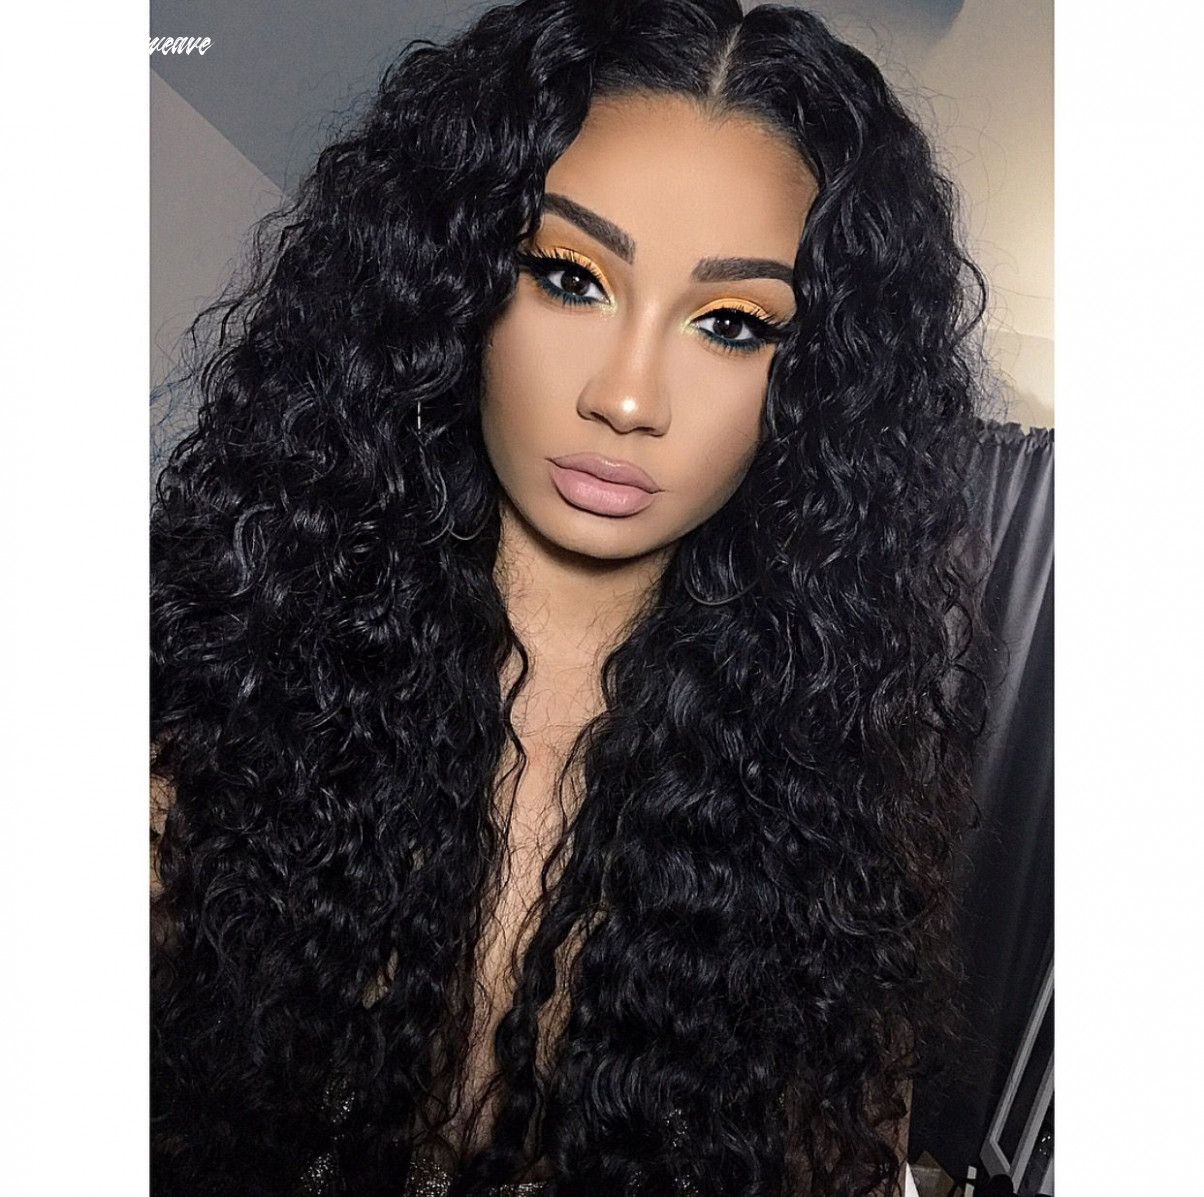 Goddessleach | curly hair styles naturally, long curly hair, deep